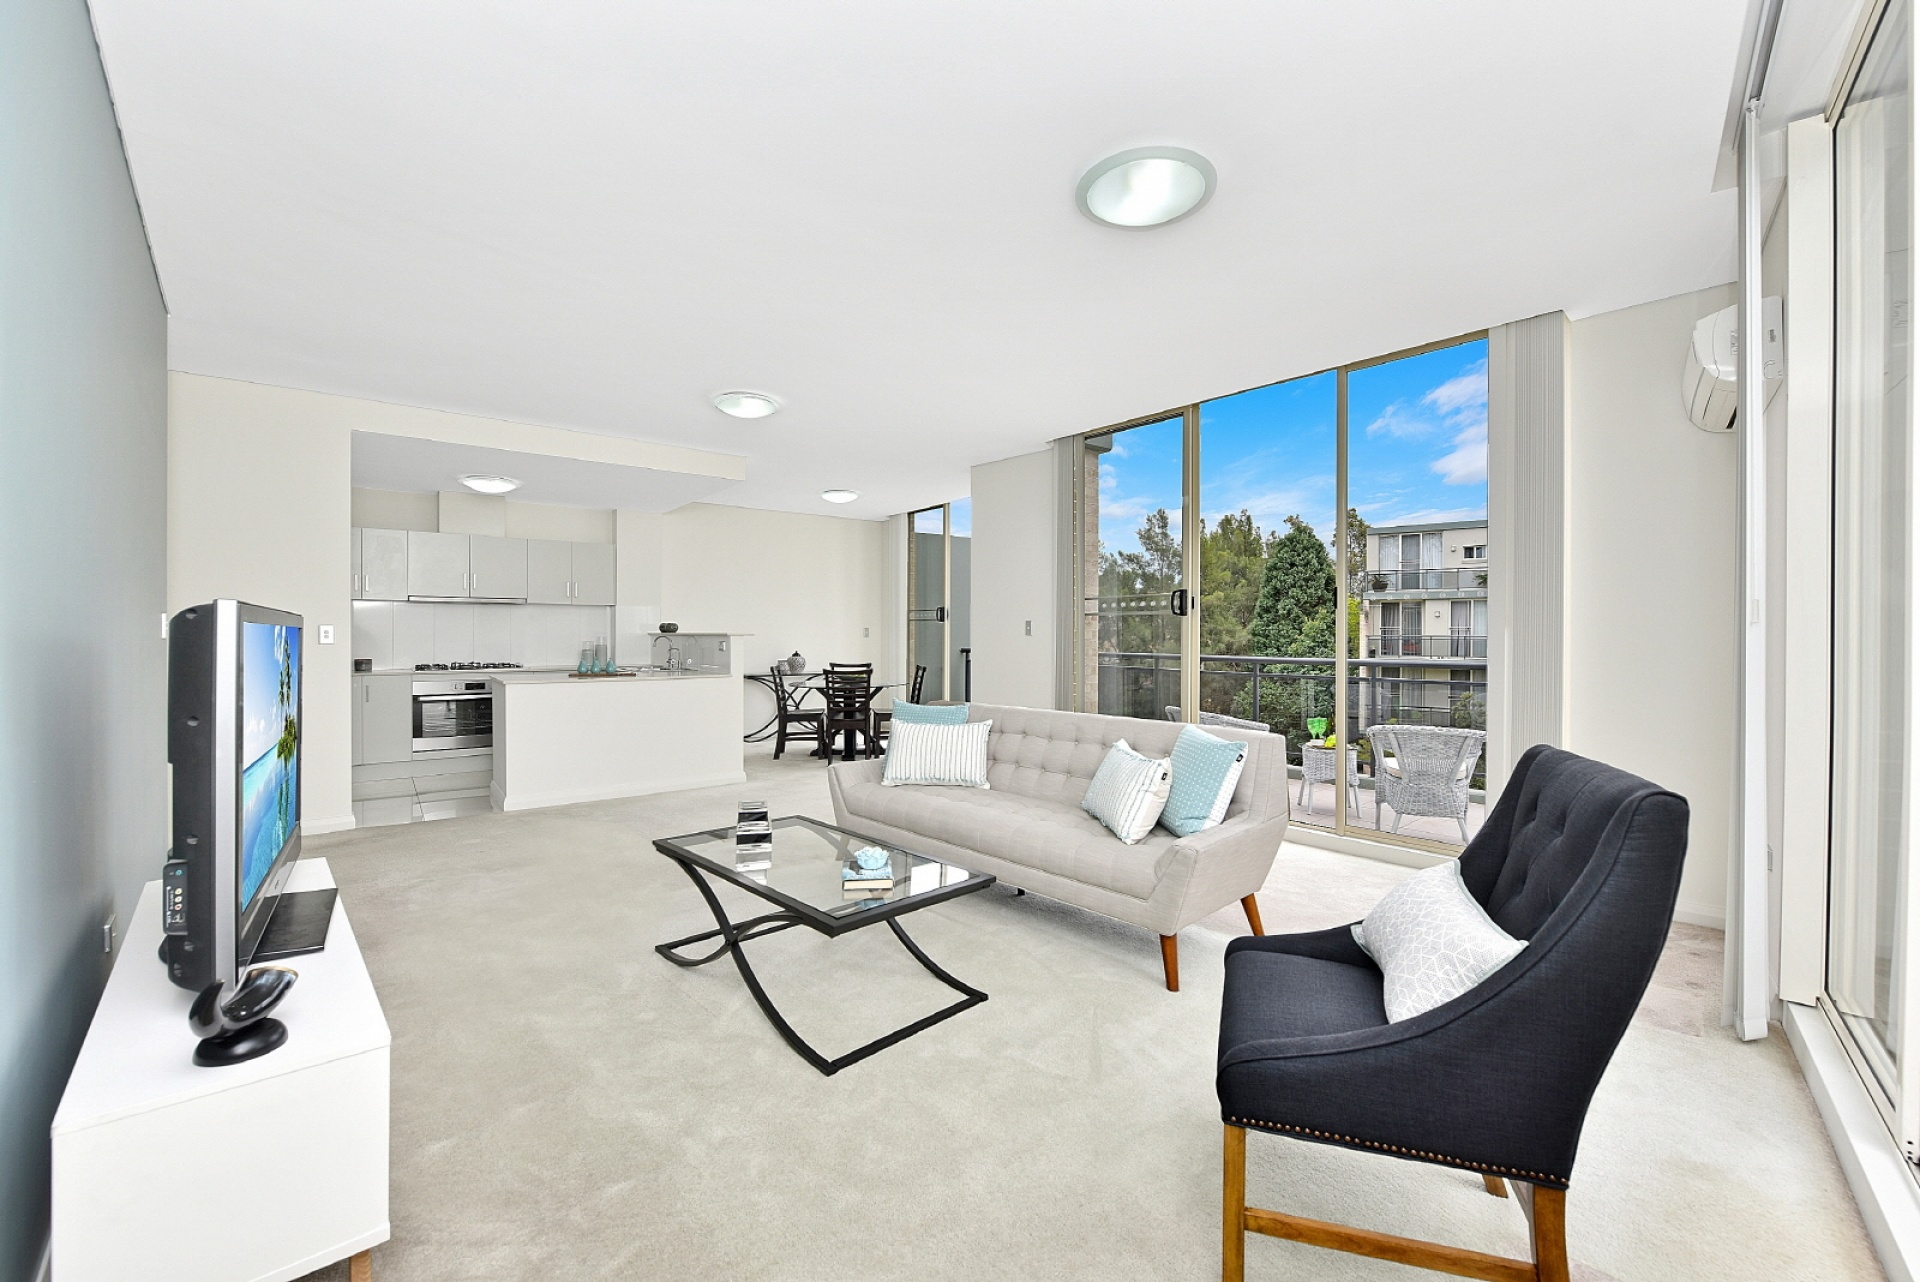 2 Bedrooms, Apartment, Sold , Mercer Street, 2 Bathrooms, Listing ID 1190, Castle Hill , NSW, Australia,